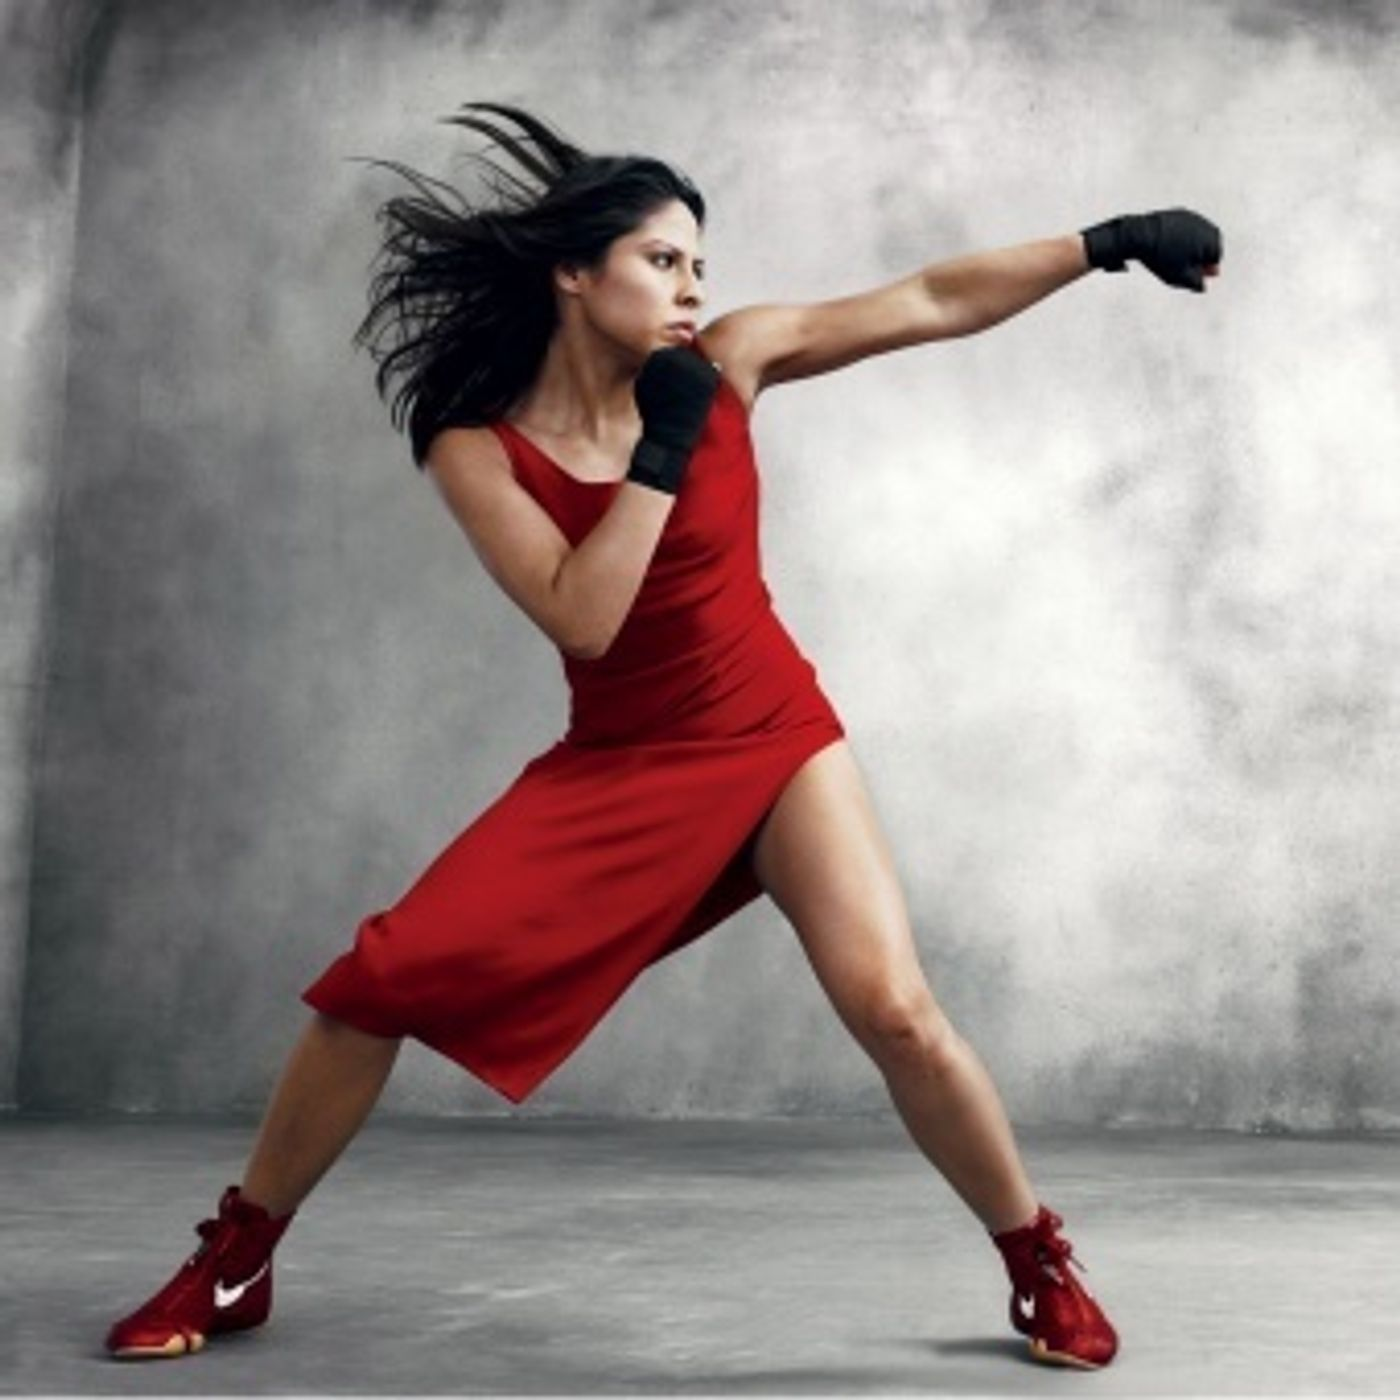 Olympic Boxing Medalist Marlen Esparza